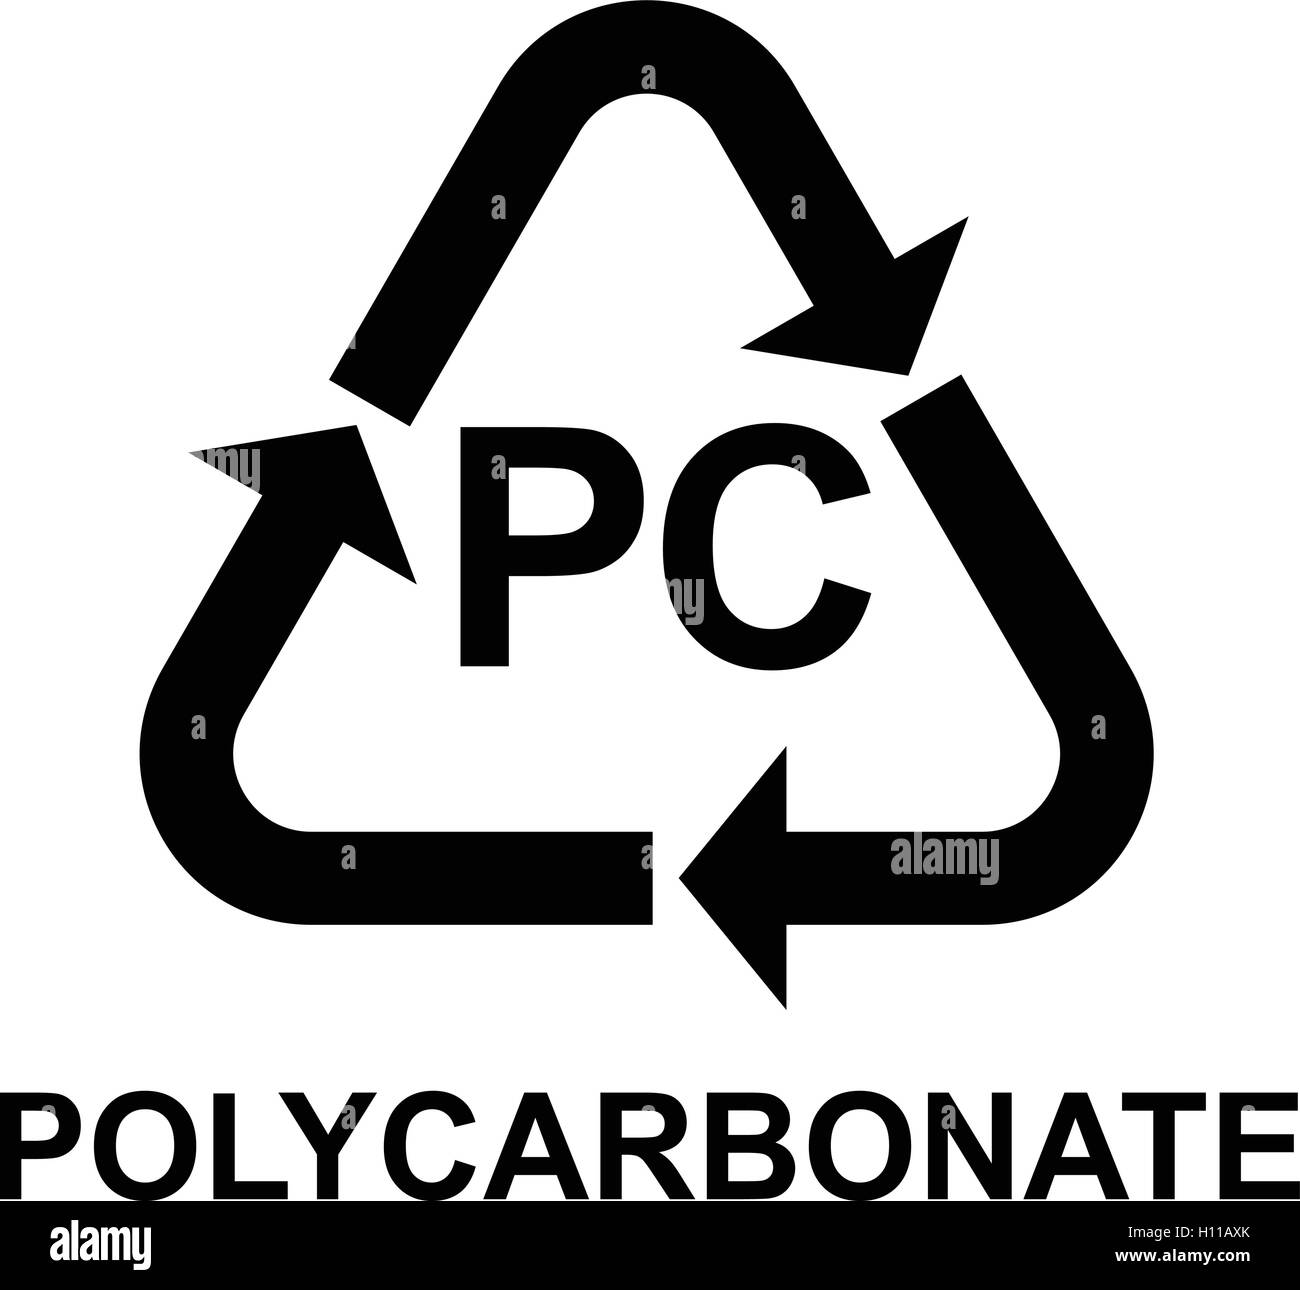 Recycling code stock vector images alamy plastic recycling symbol pc polycarbonate vector illustration stock vector biocorpaavc